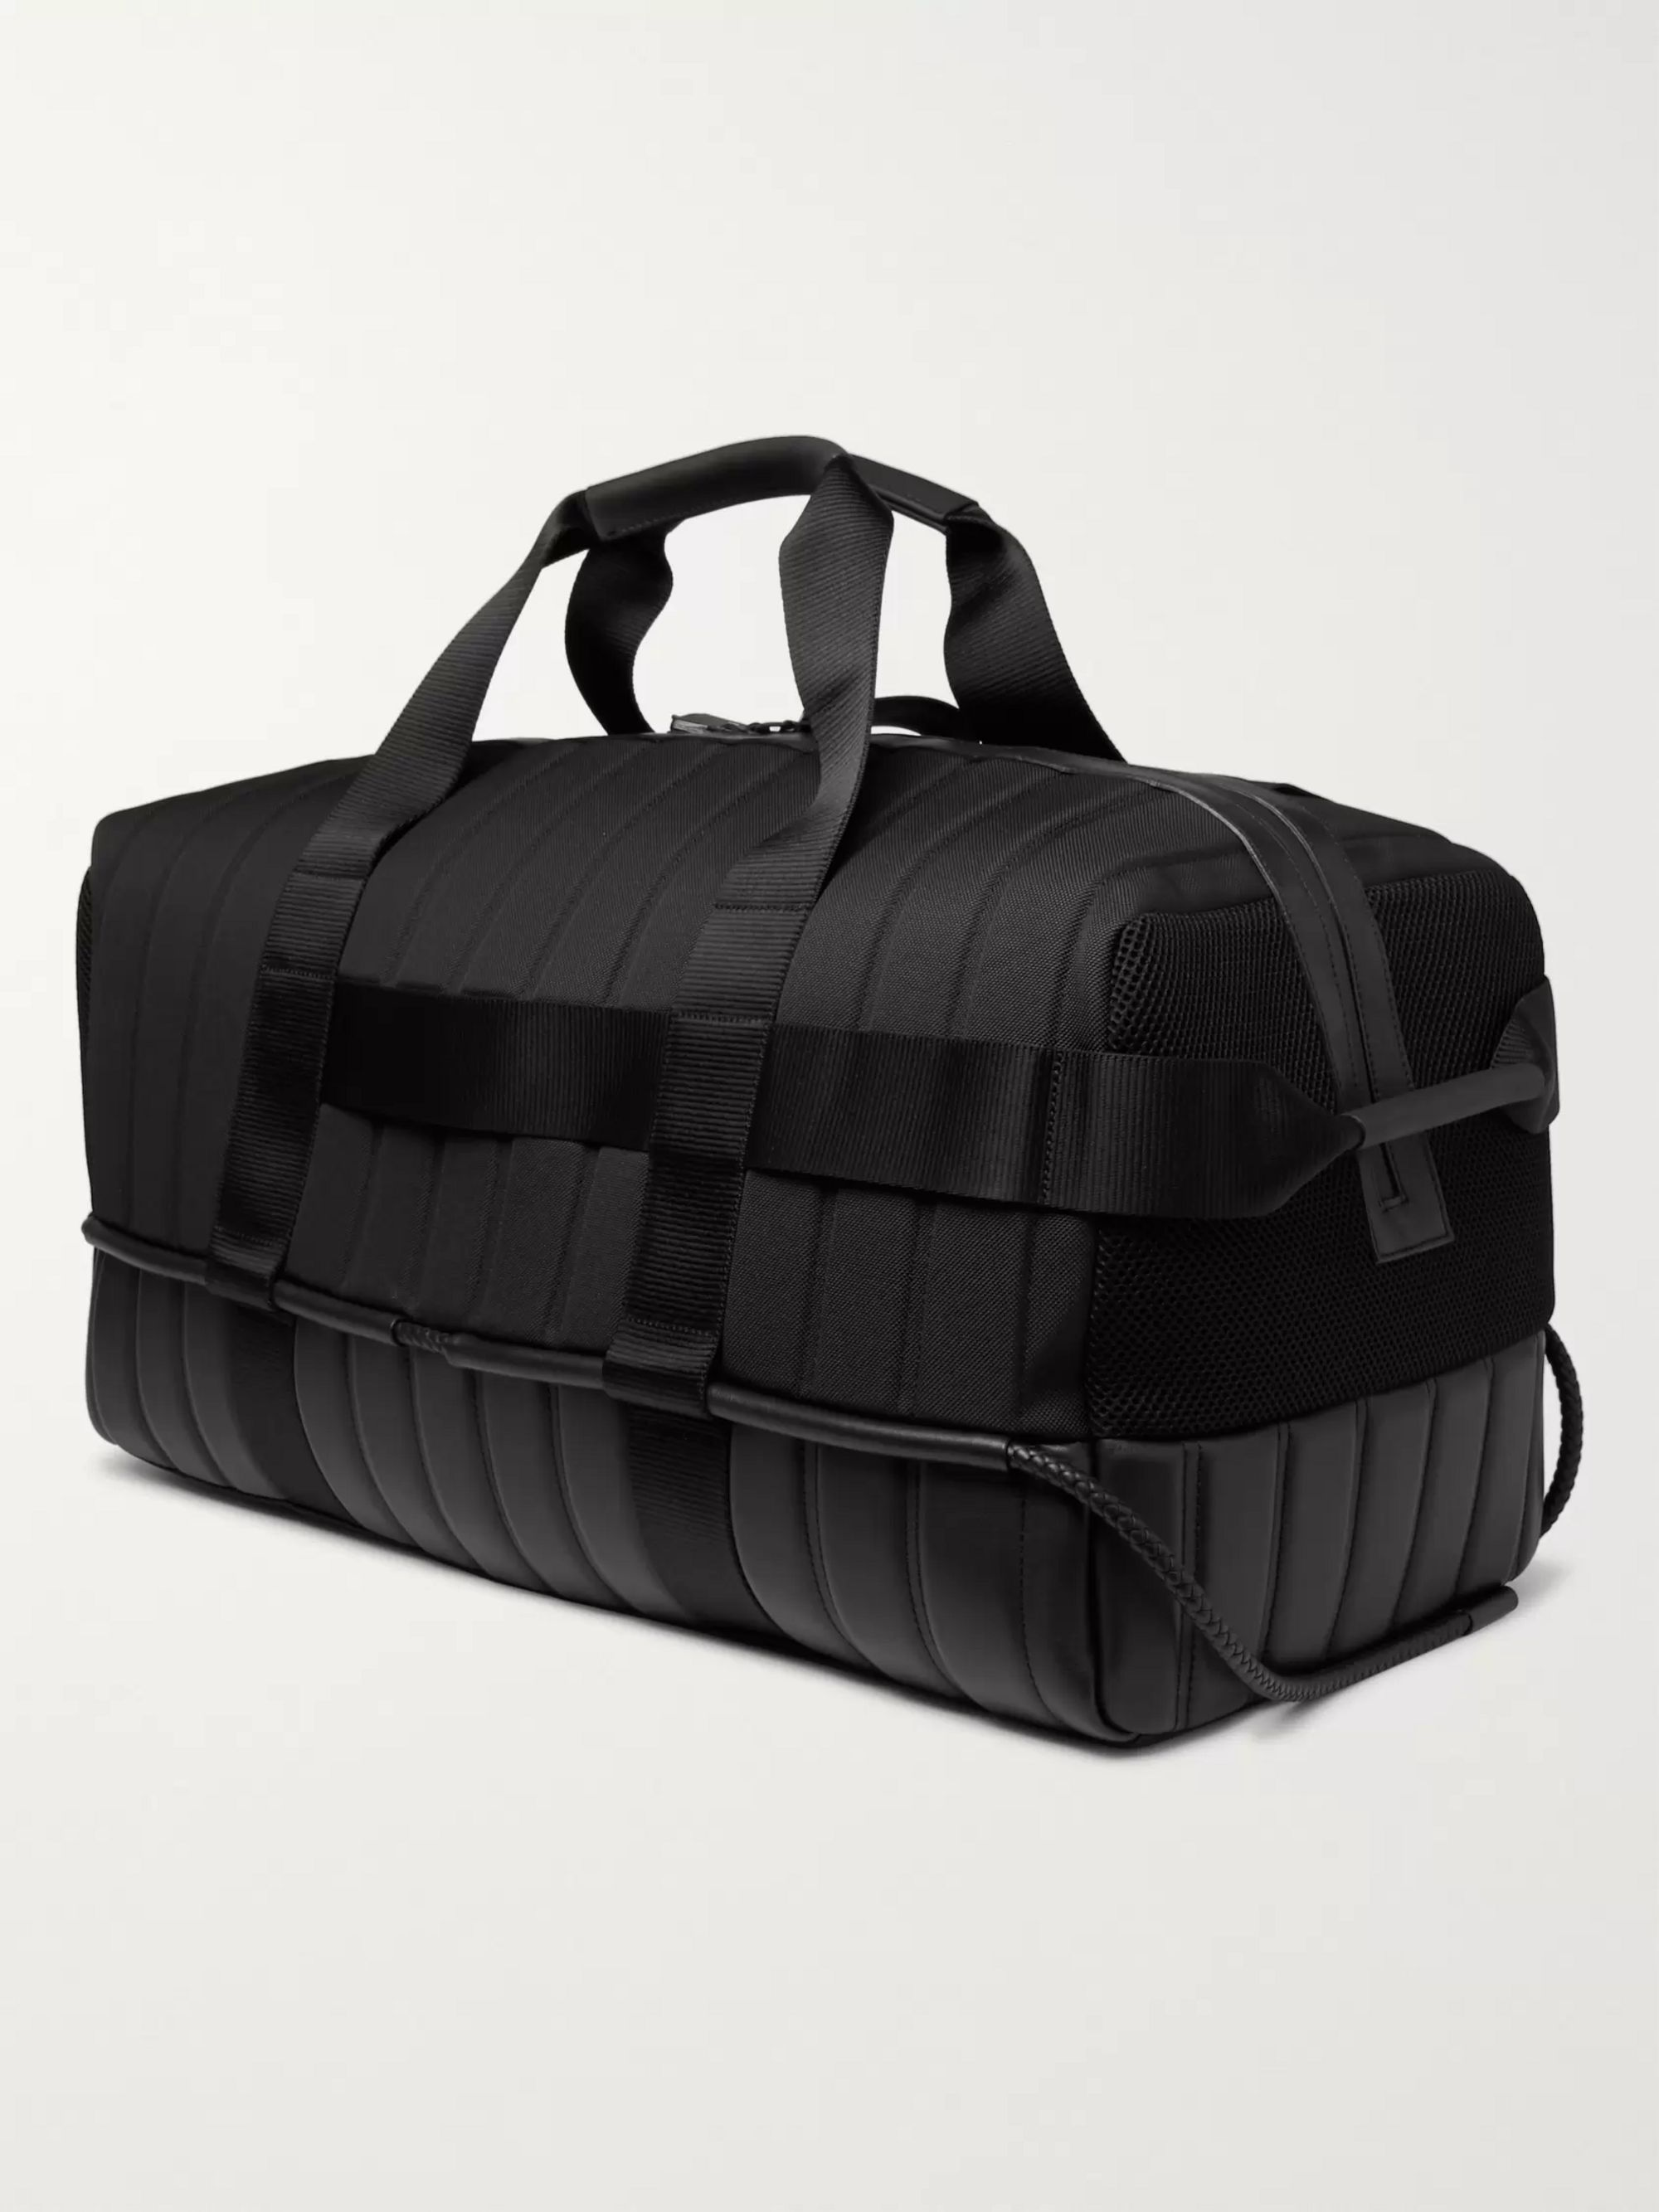 Moncler Genius 5 Moncler Craig Green Quilted Canvas, Leather and Mesh Holdall